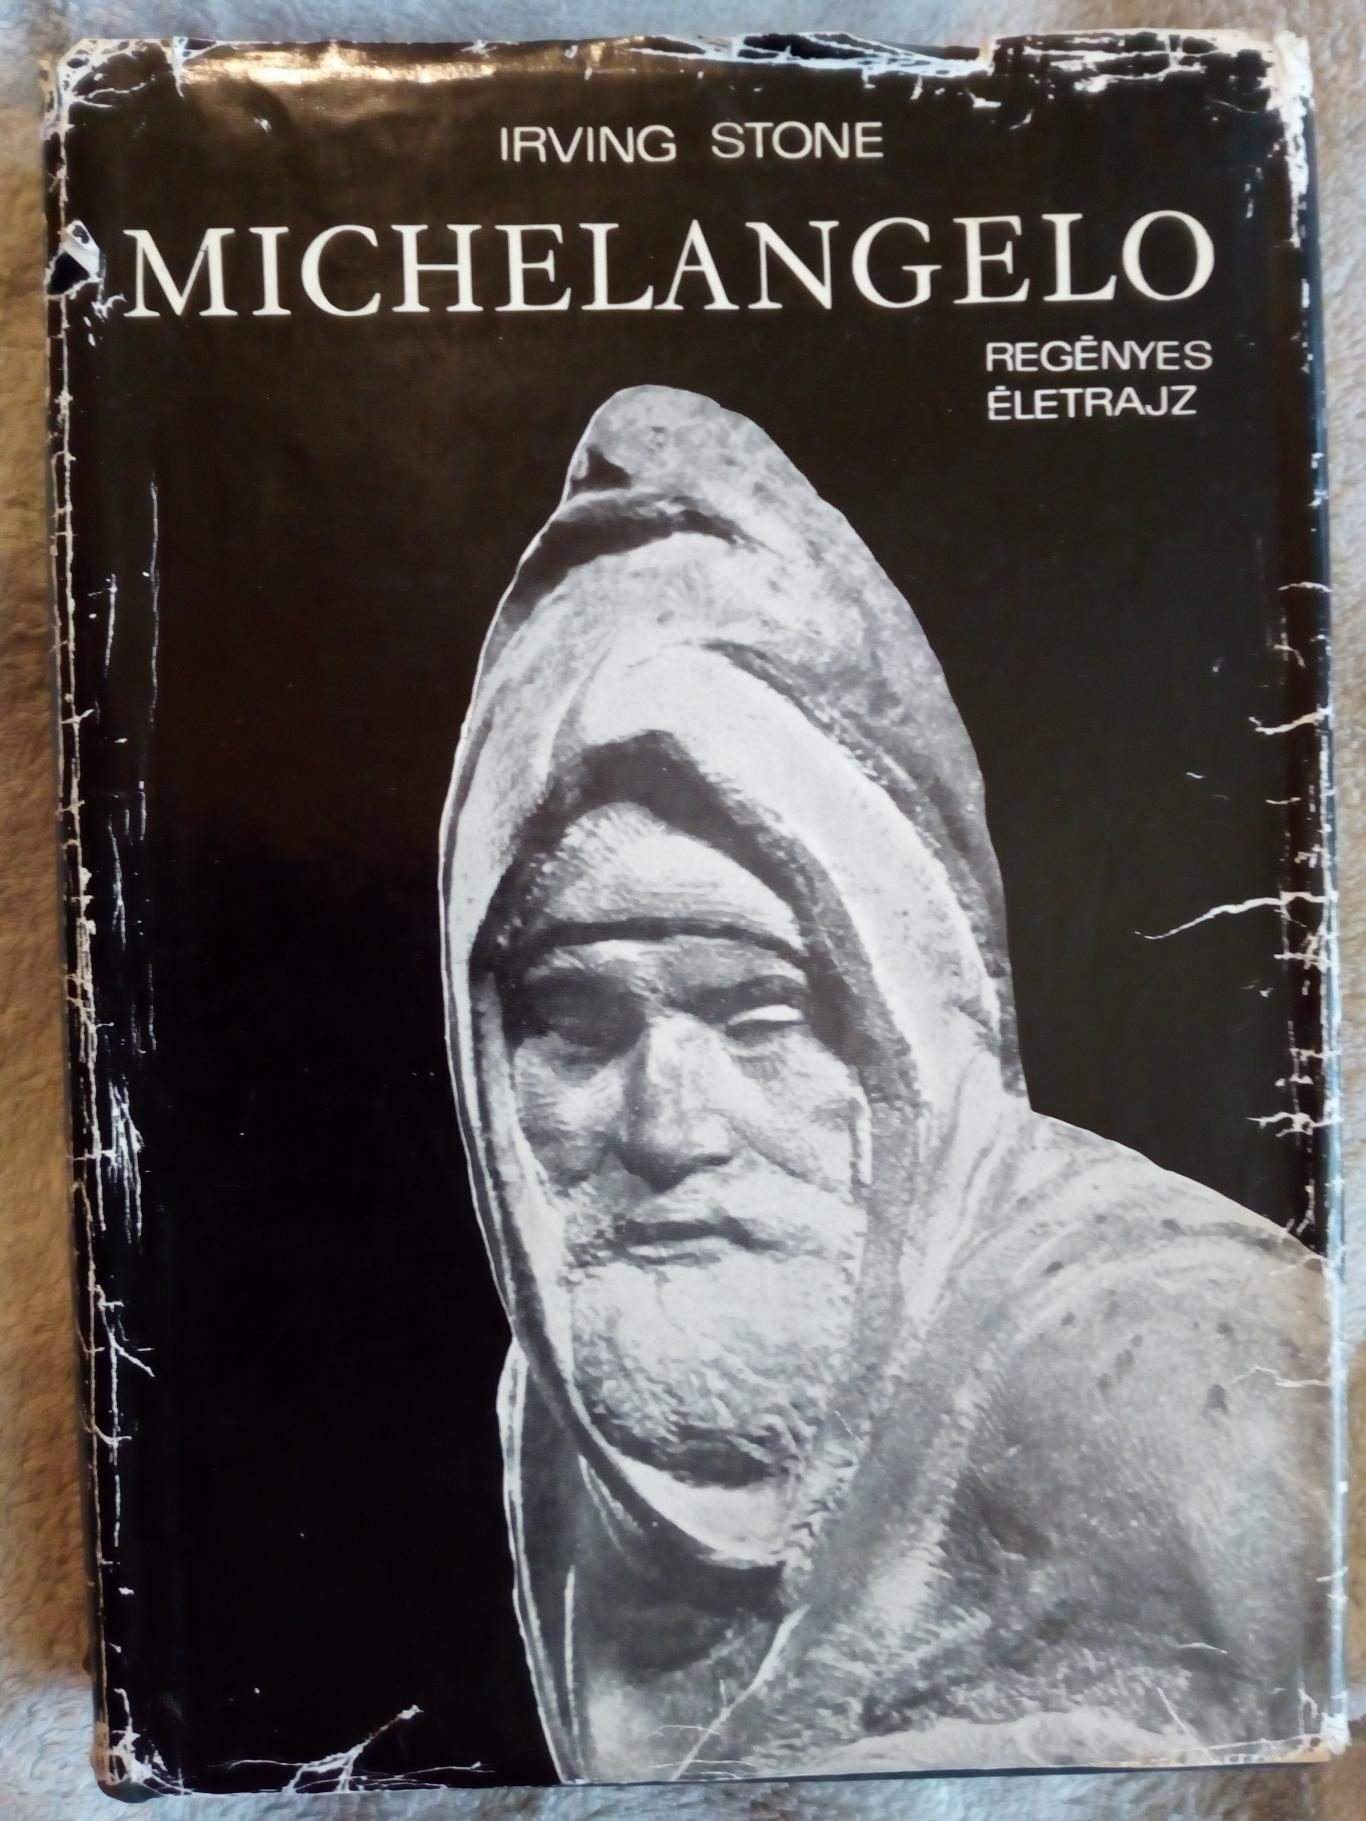 Michelangelo, Irving Stone